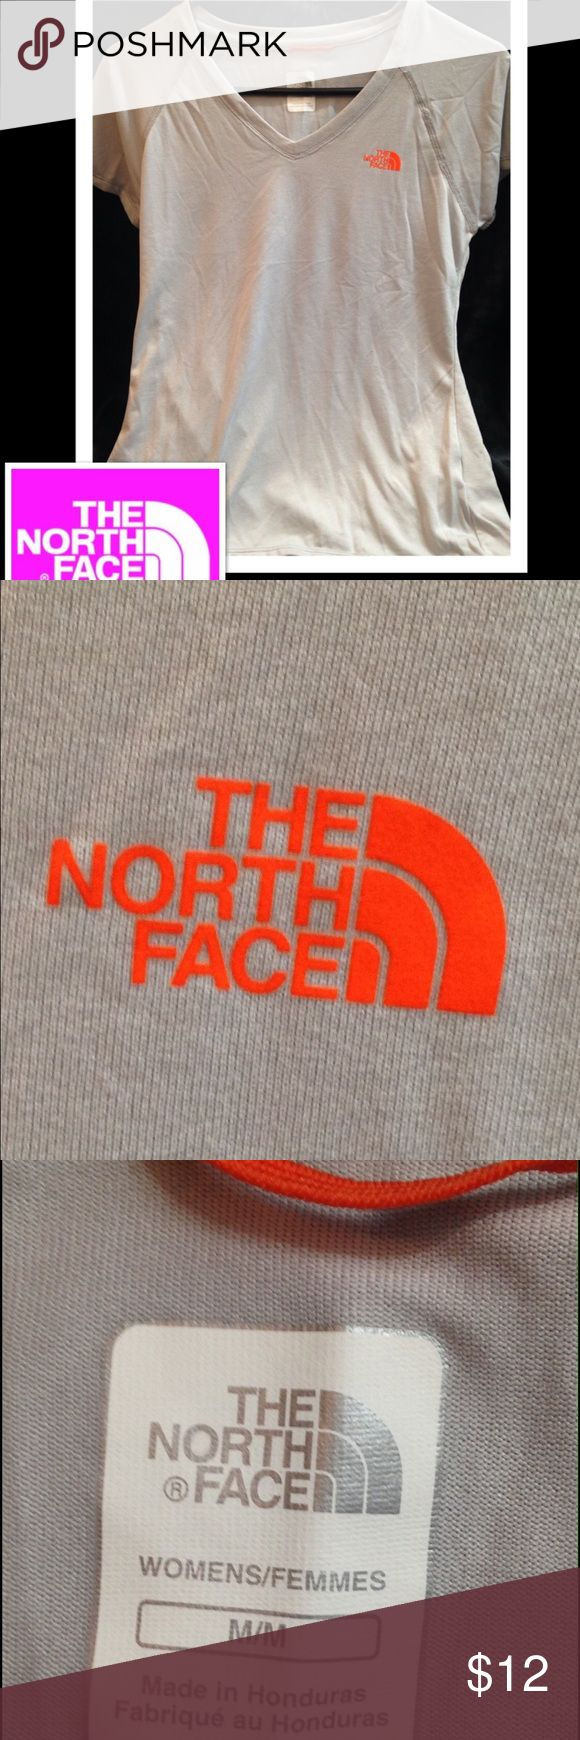 🚴🏻♀️The North Face Lightweight T-Shirt Med. Stay dry during sweaty gym cardio sessions wearing The North Face Reaxion Amp V-Neck T-shirt. Soft knit fibers are treated to handle moisture during intense aerobic activity.  Smooth and soft against the skin, the quick-drying VaporWick® fabric moves sweat away from the skin so it can evaporate quickly The North Face Reaxion Amp V-Neck T-shirt features a flattering V-neck, raglan sleeves, a drop-tail hem and a convenient locker loop. Can be with…